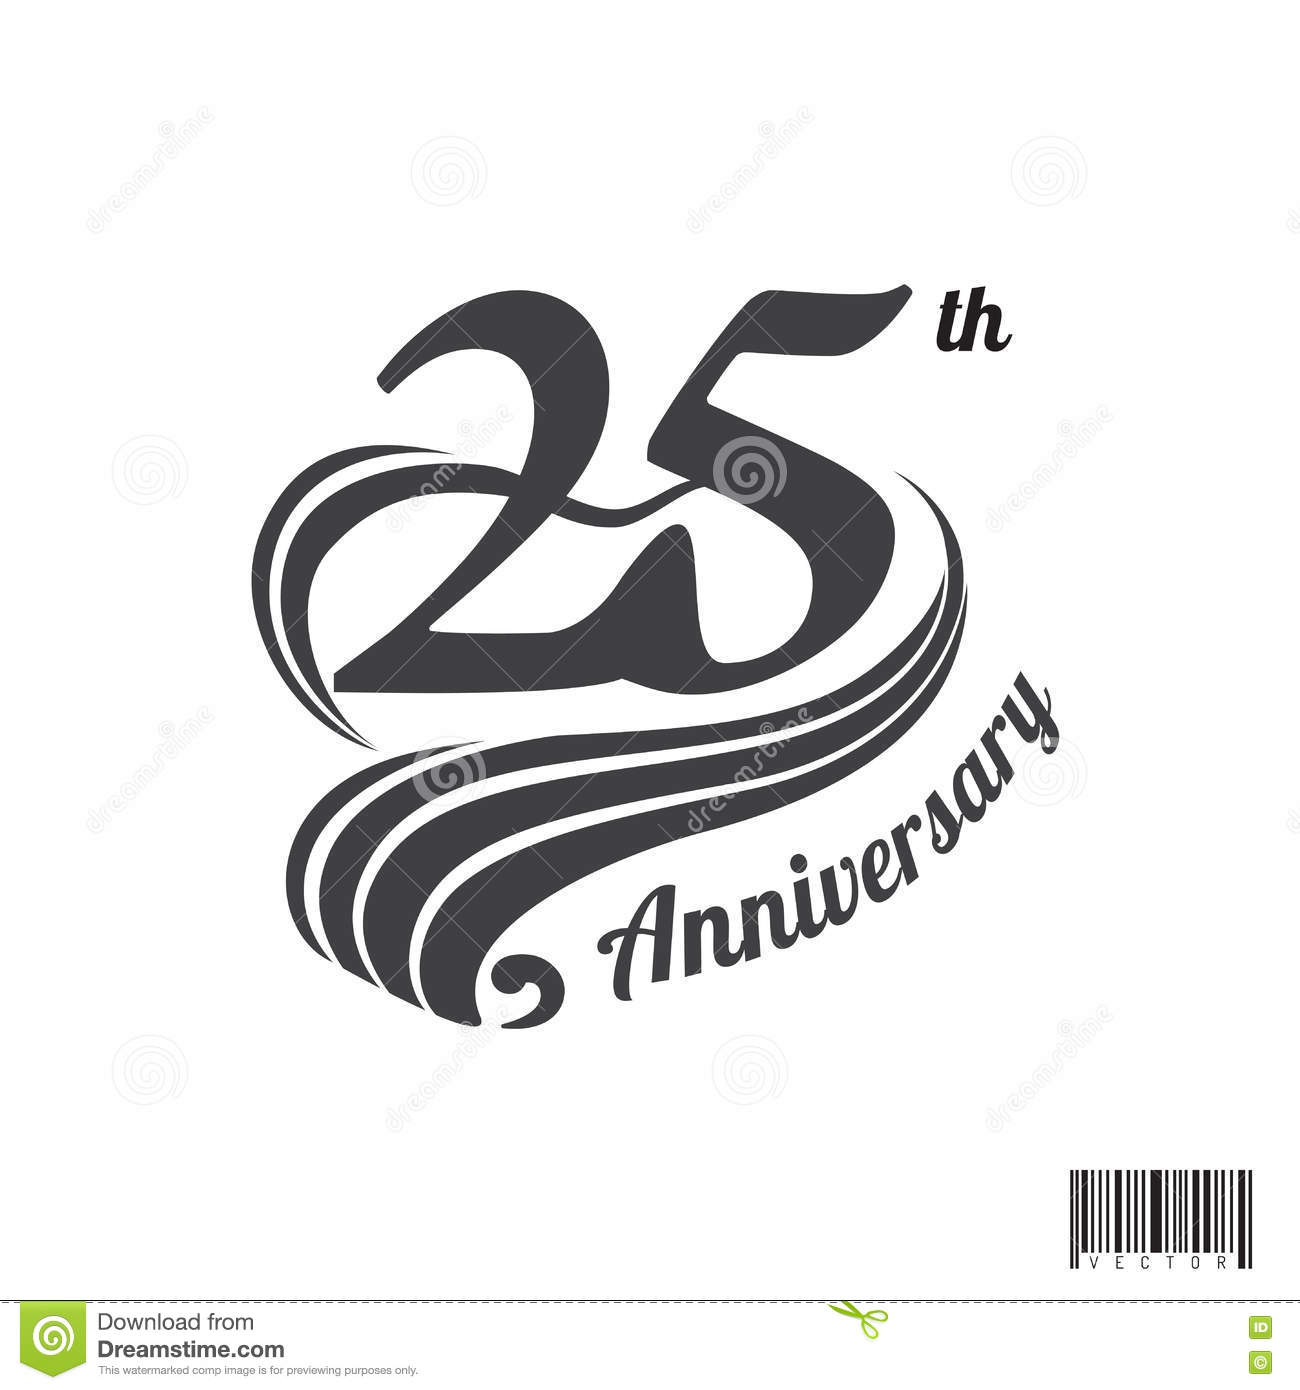 25 th anniversary logo